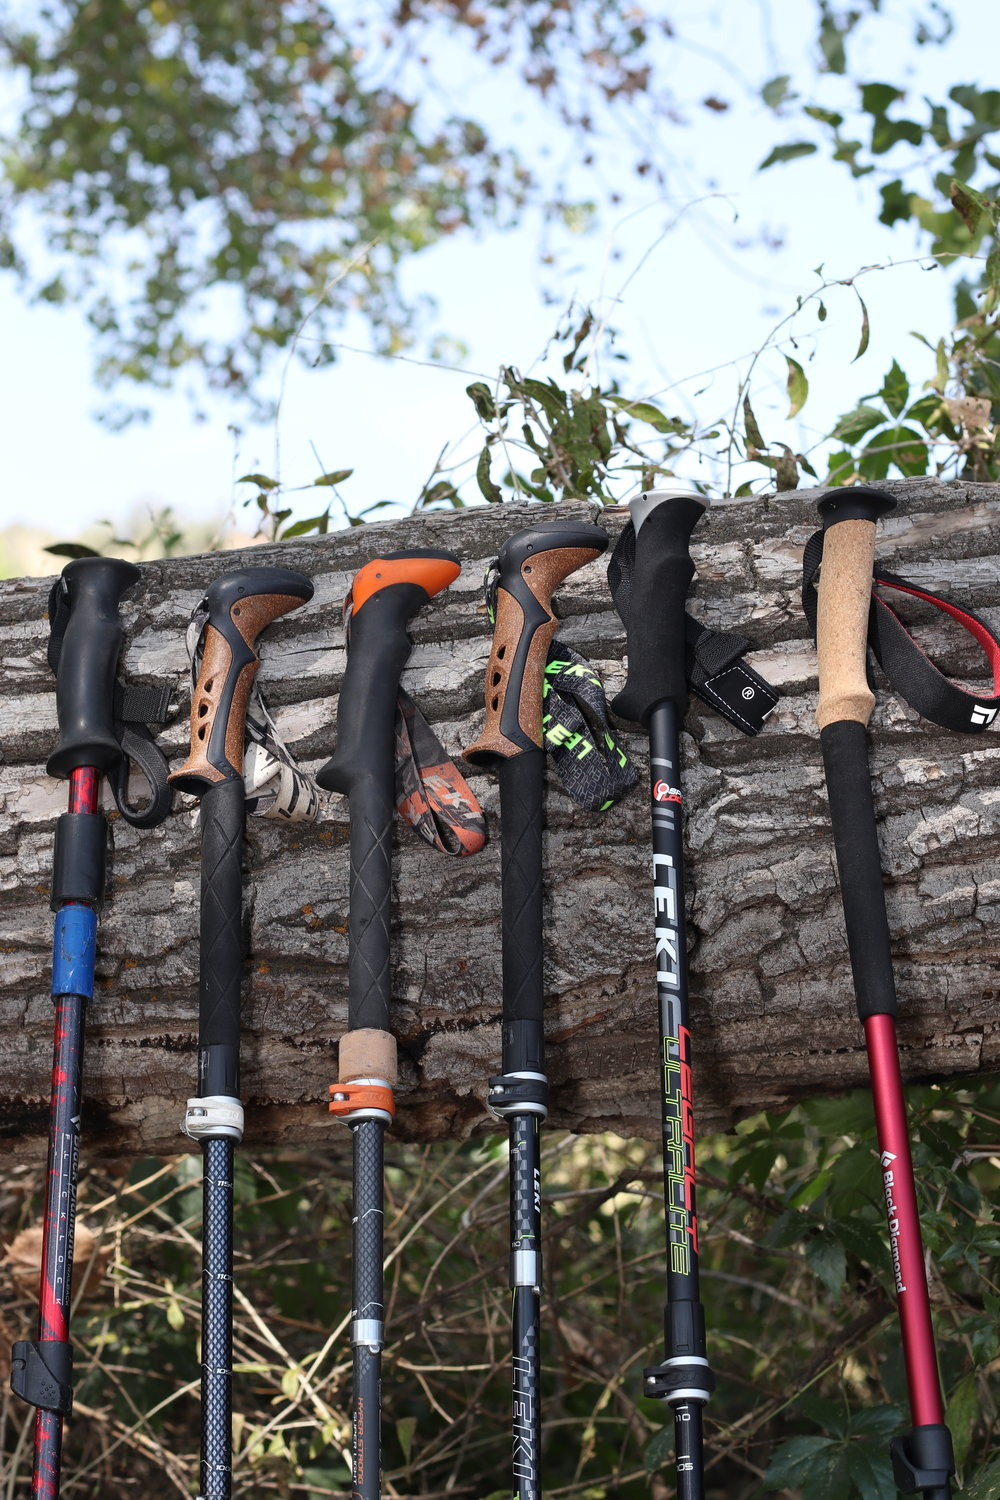 - READ THE FULL COMPARATIVE REVIEW OF HIKING POLES HERE